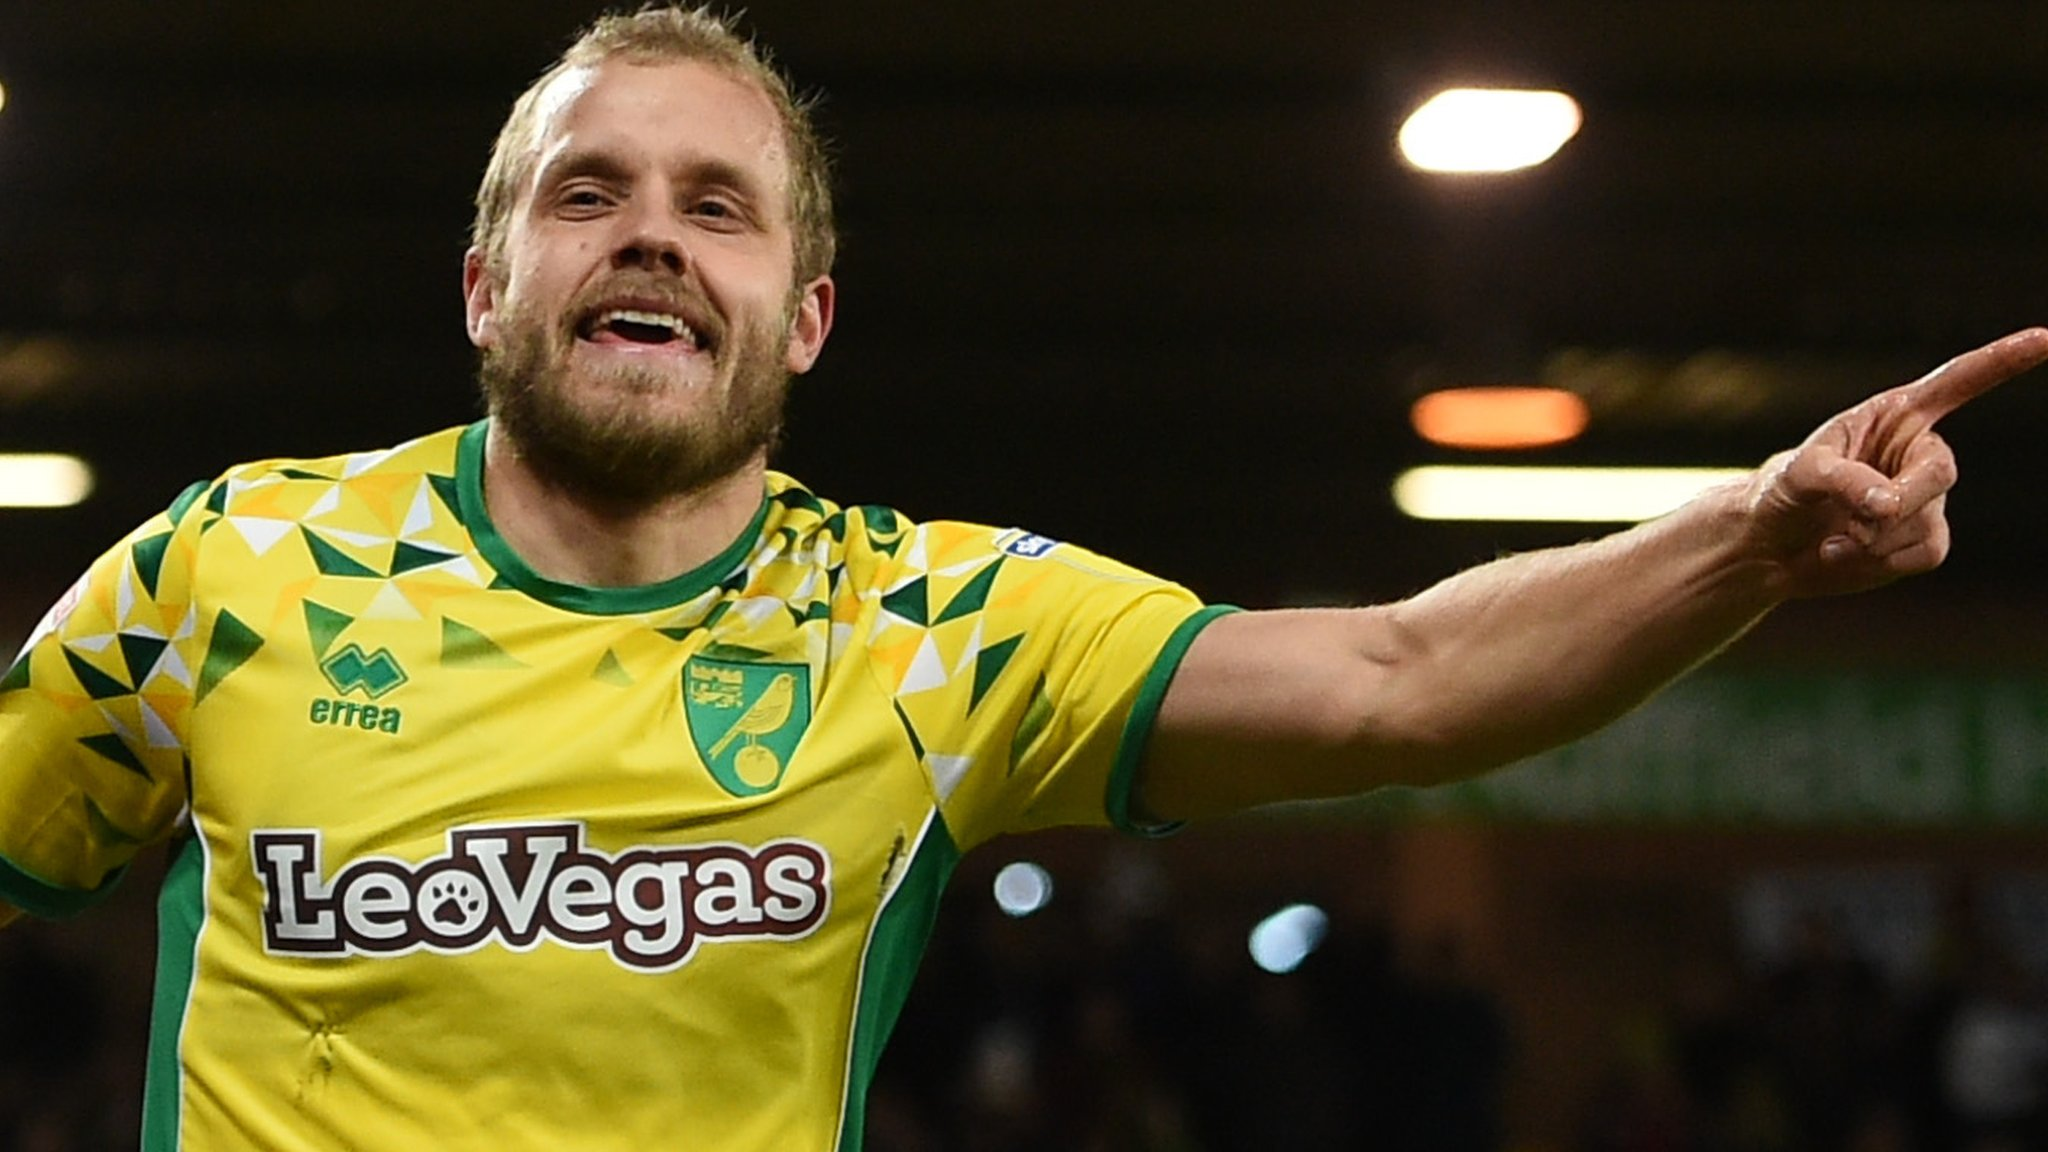 Norwich City 3-1 Birmingham City: Canaries end winless run in lively game